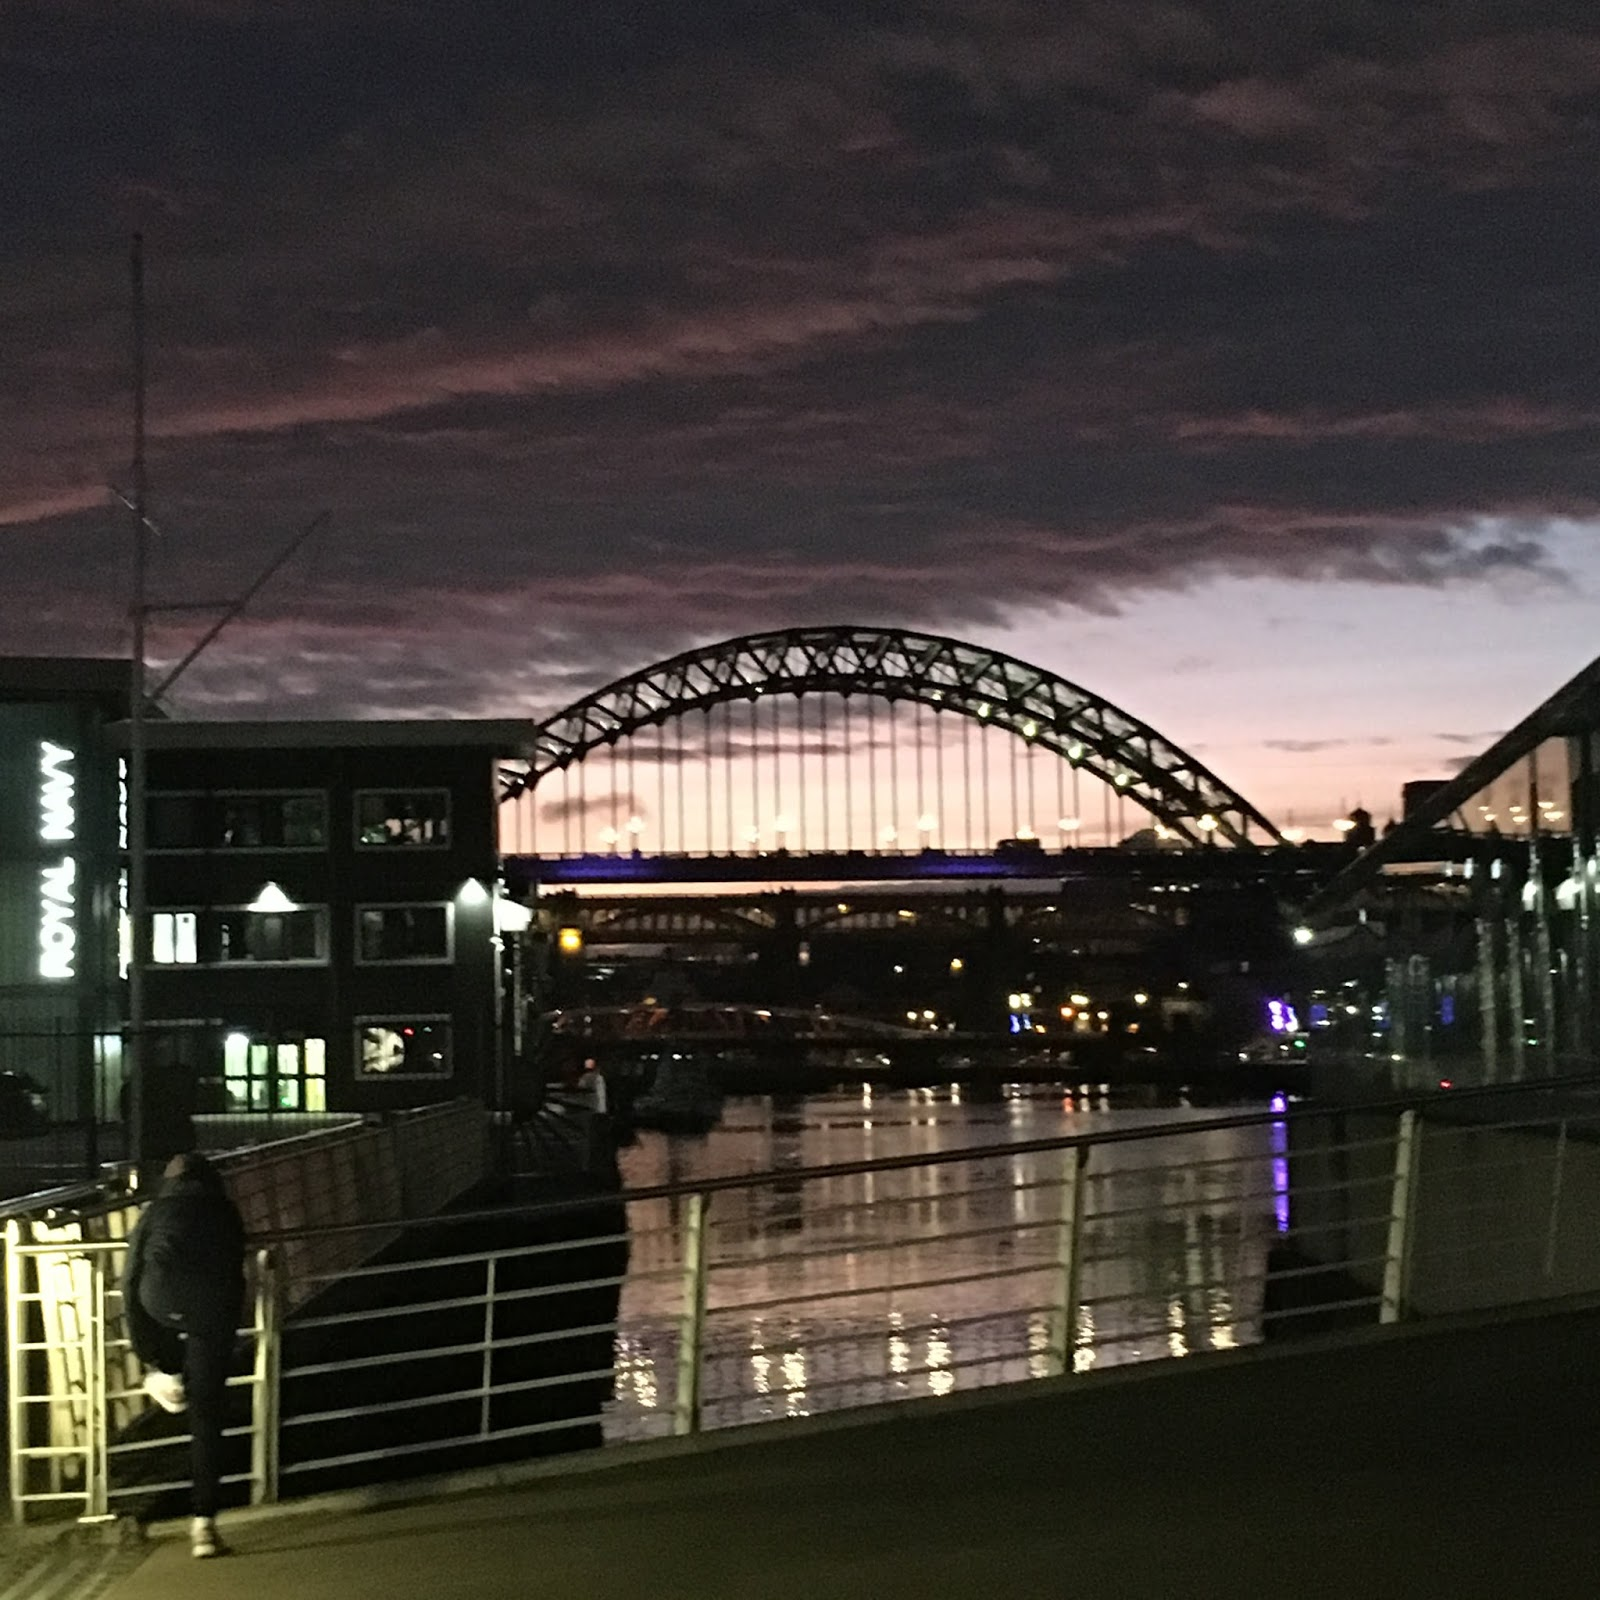 Weekend in Tynemouth, Newcastle, Tyne Bridge at Sunset